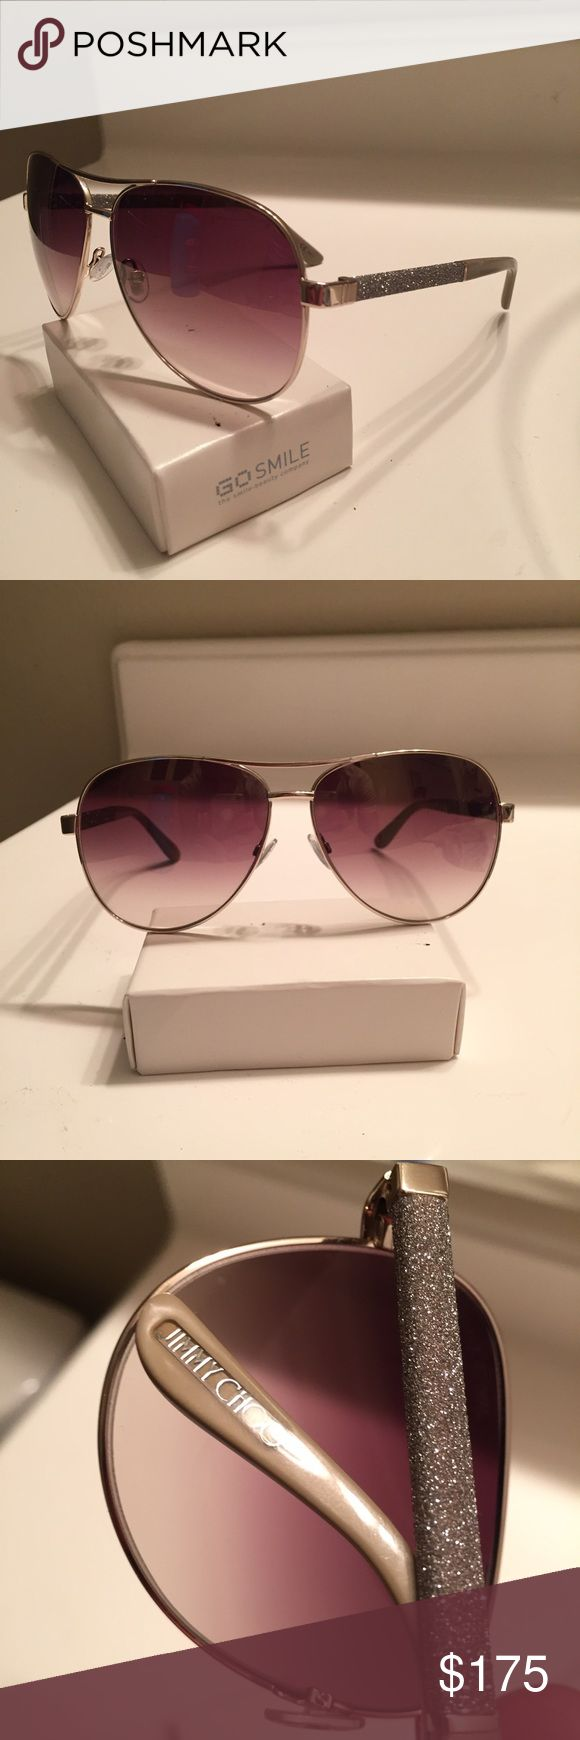 Jimmy Choo Lexie women's aviator sunglasses Store display Jimmy Choo aviator sunglasses in like new condition. No jimmy Choo case but a hard case will be included. Jimmy Choo Accessories Sunglasses